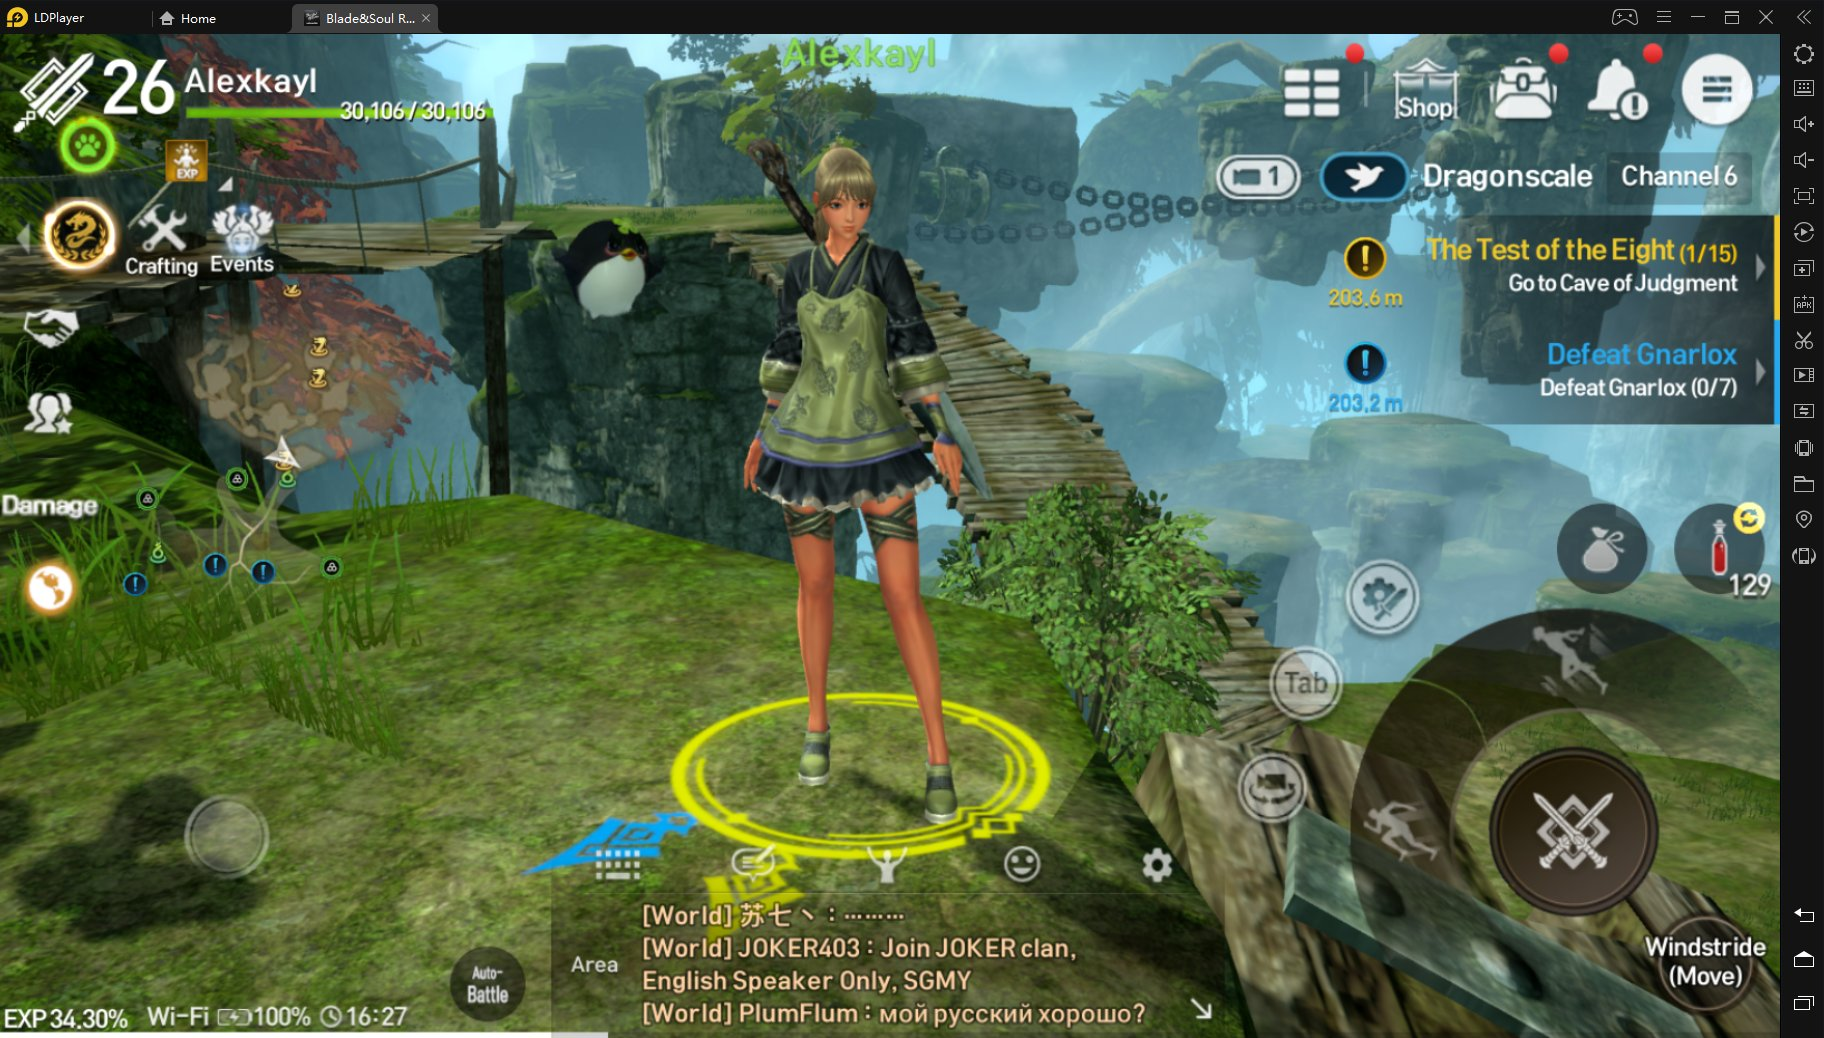 How to Play Blade&Soul Revolution Asia